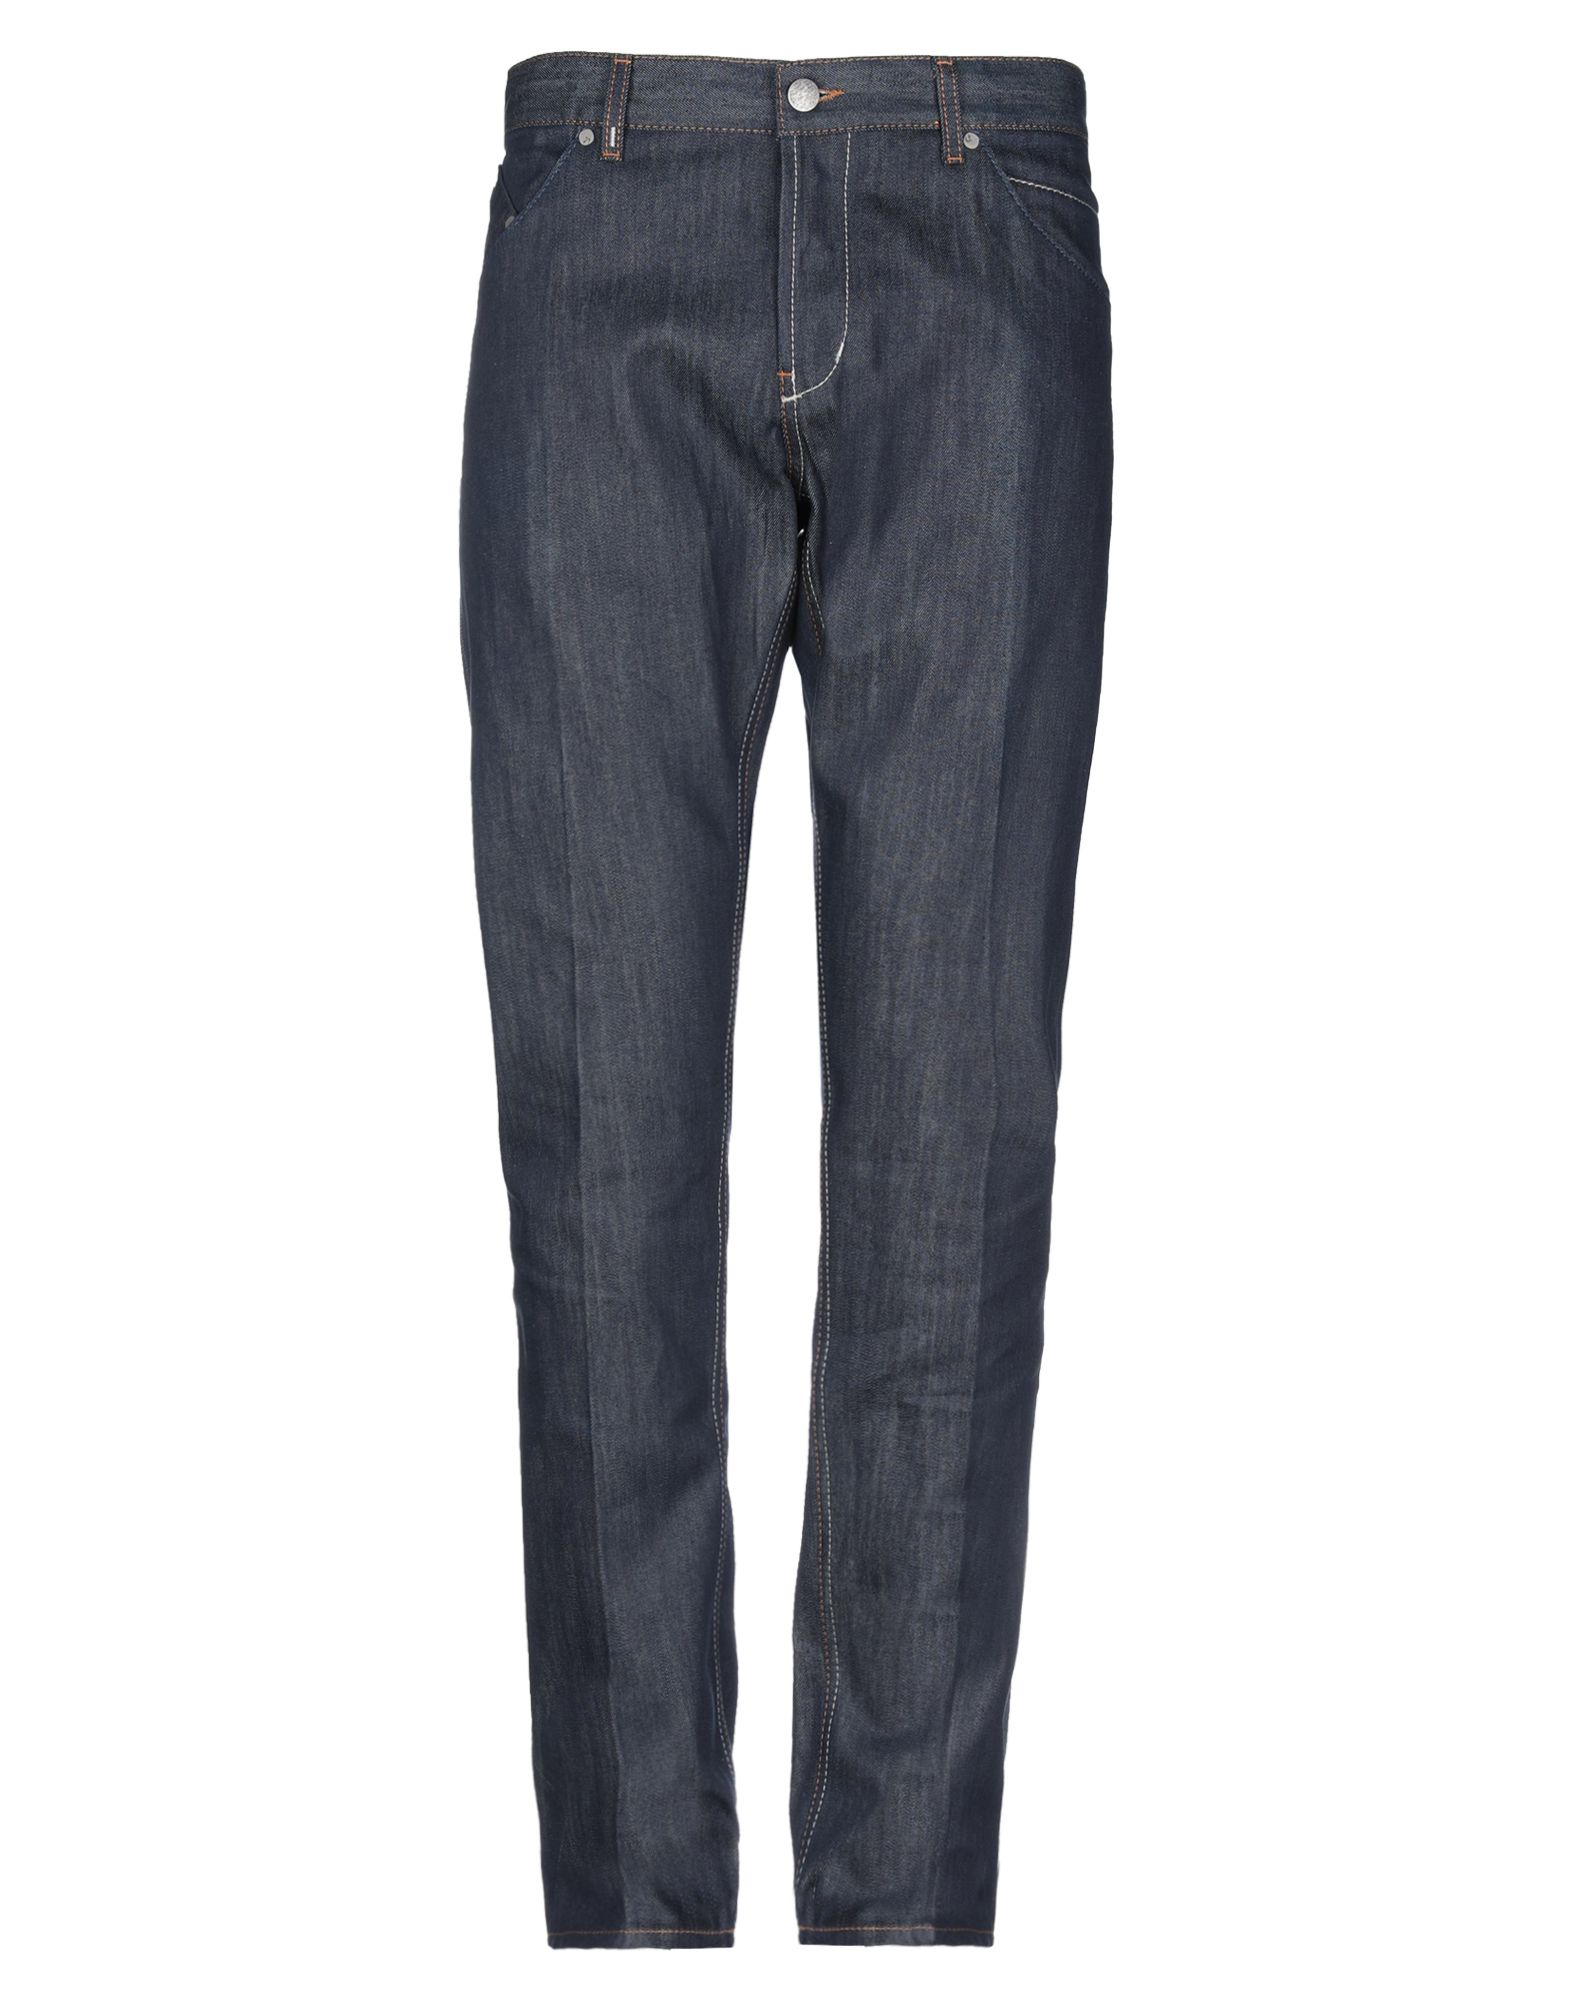 DONDUP Jeans. model: sammy, denim, logo, solid color, dark wash, mid rise, front closure, button closing, multipockets, contains non-textile parts of animal origin, small sized. 100% Cotton